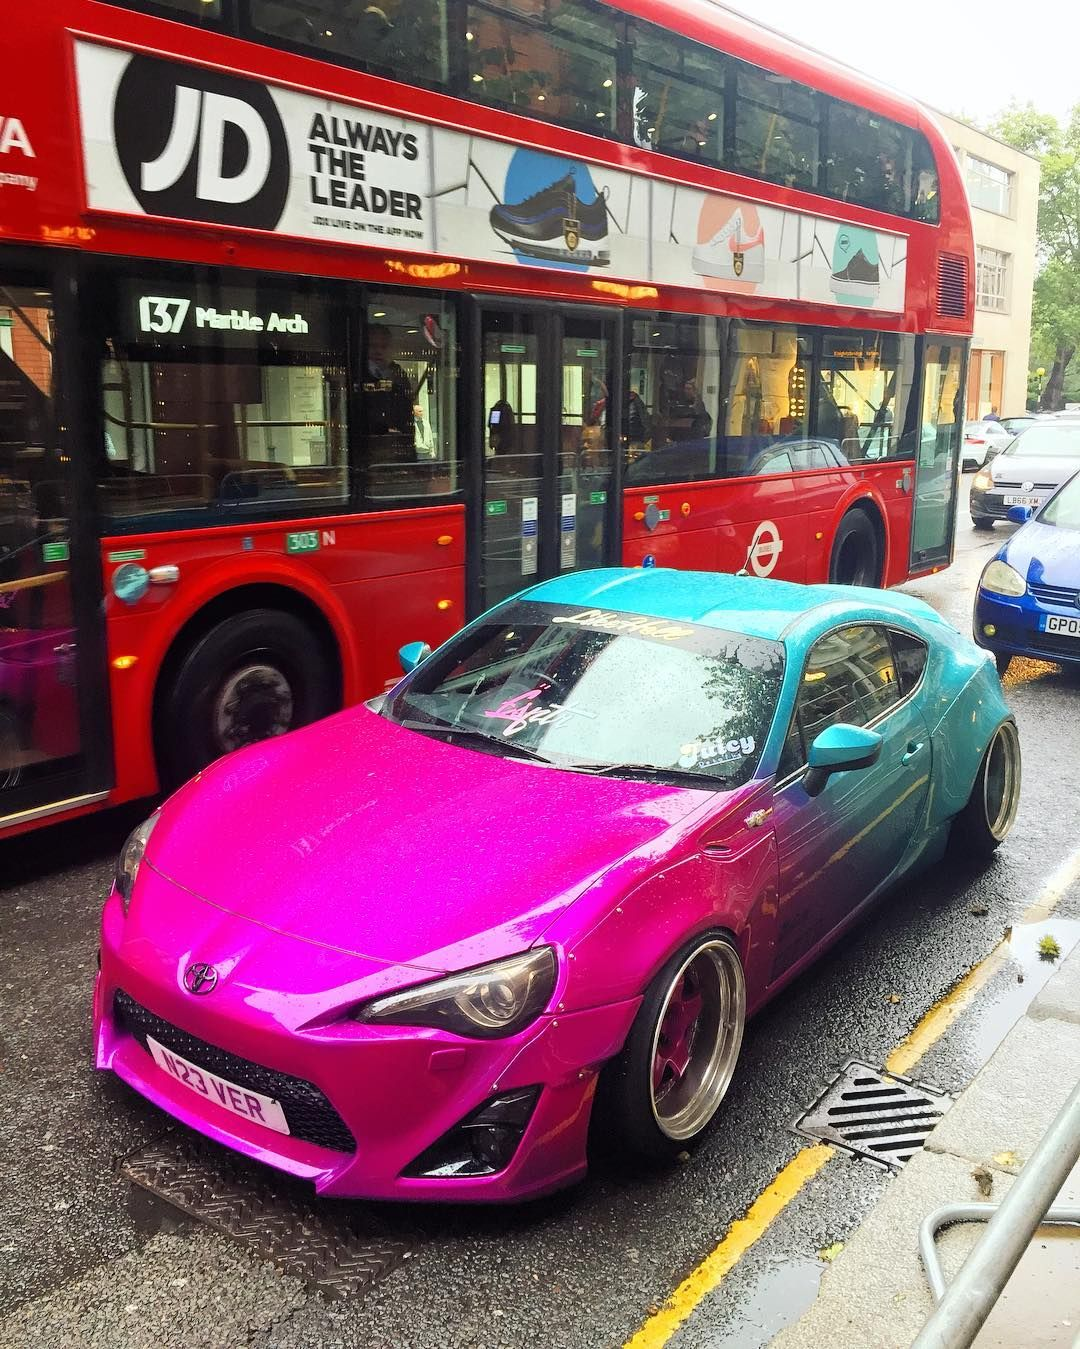 Popped Into London For Another Sloane Street Shutdown And Found This Rocket Bunny Gt86 Toyota Toyotagt86 Rocketbunny London Super Cars Toyota Gt86 Toyota 86